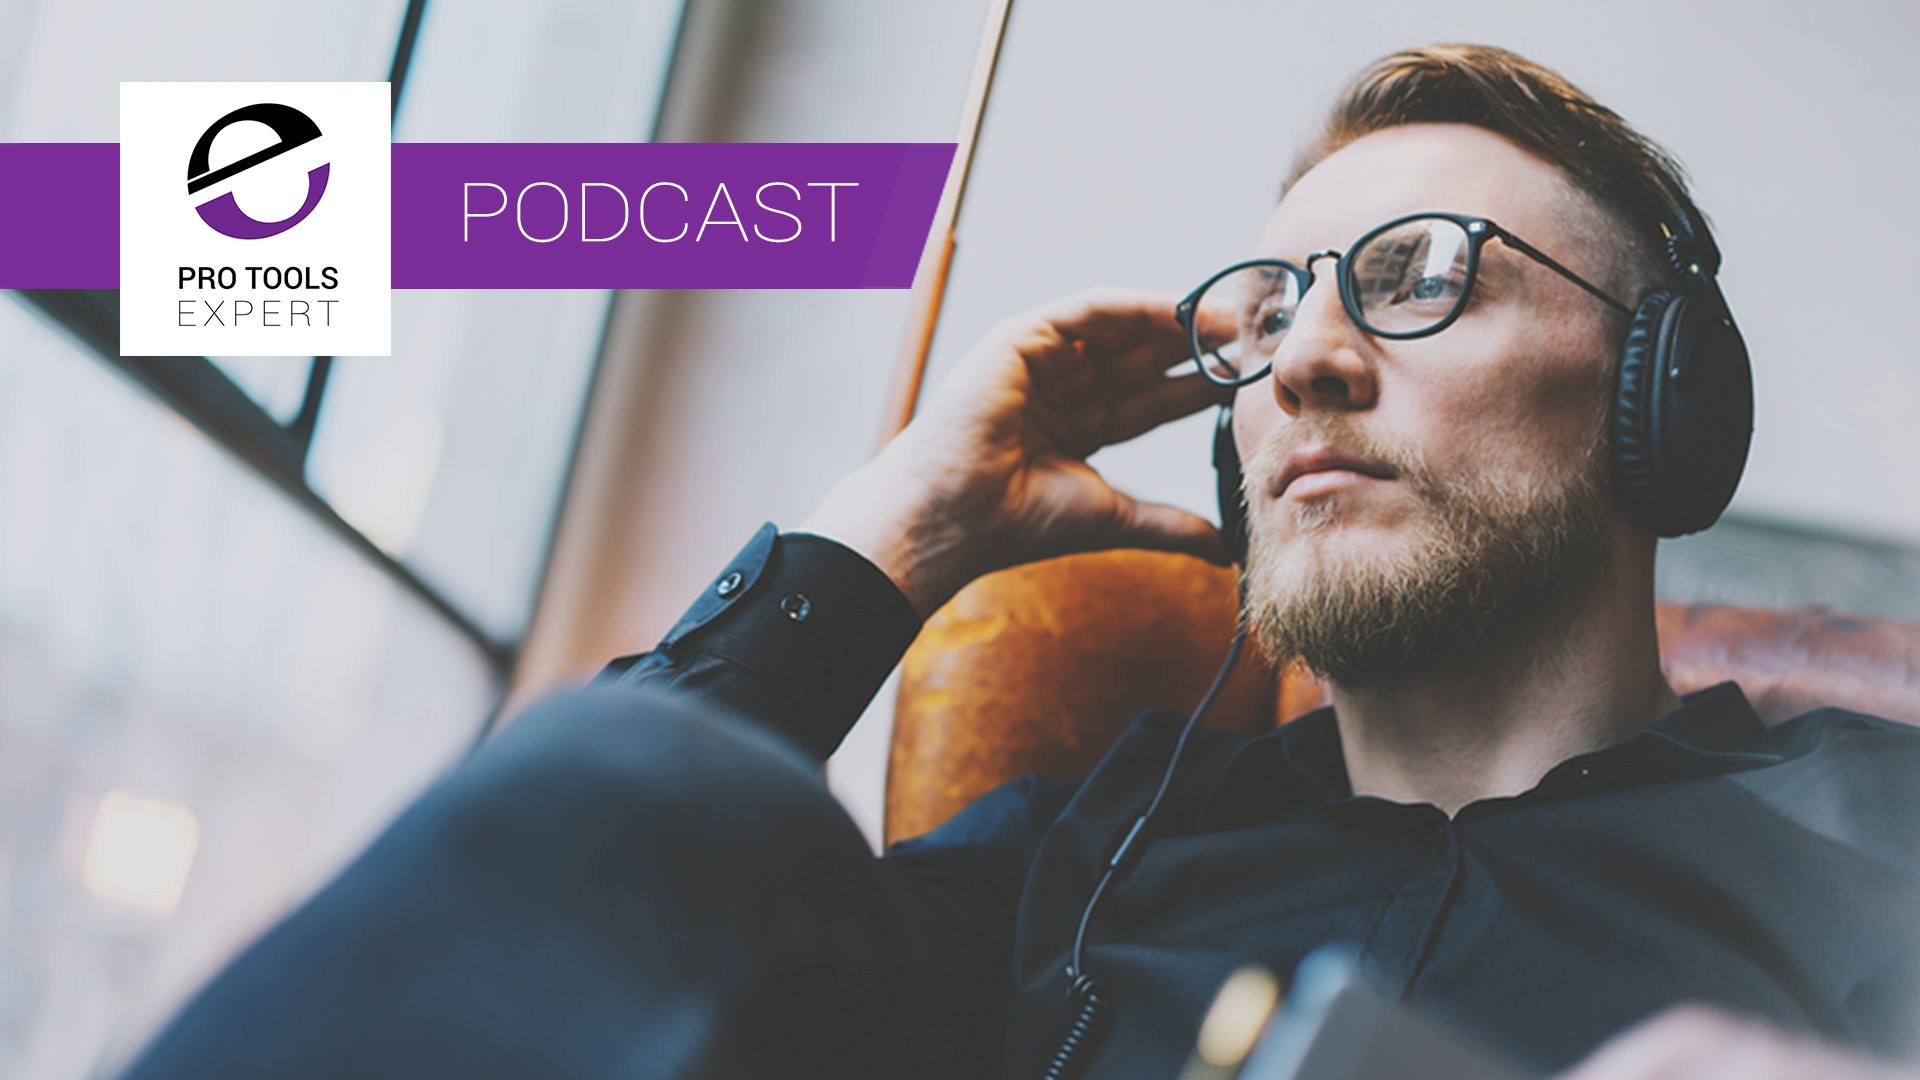 Pro Tools Expert Podcast Episode 236